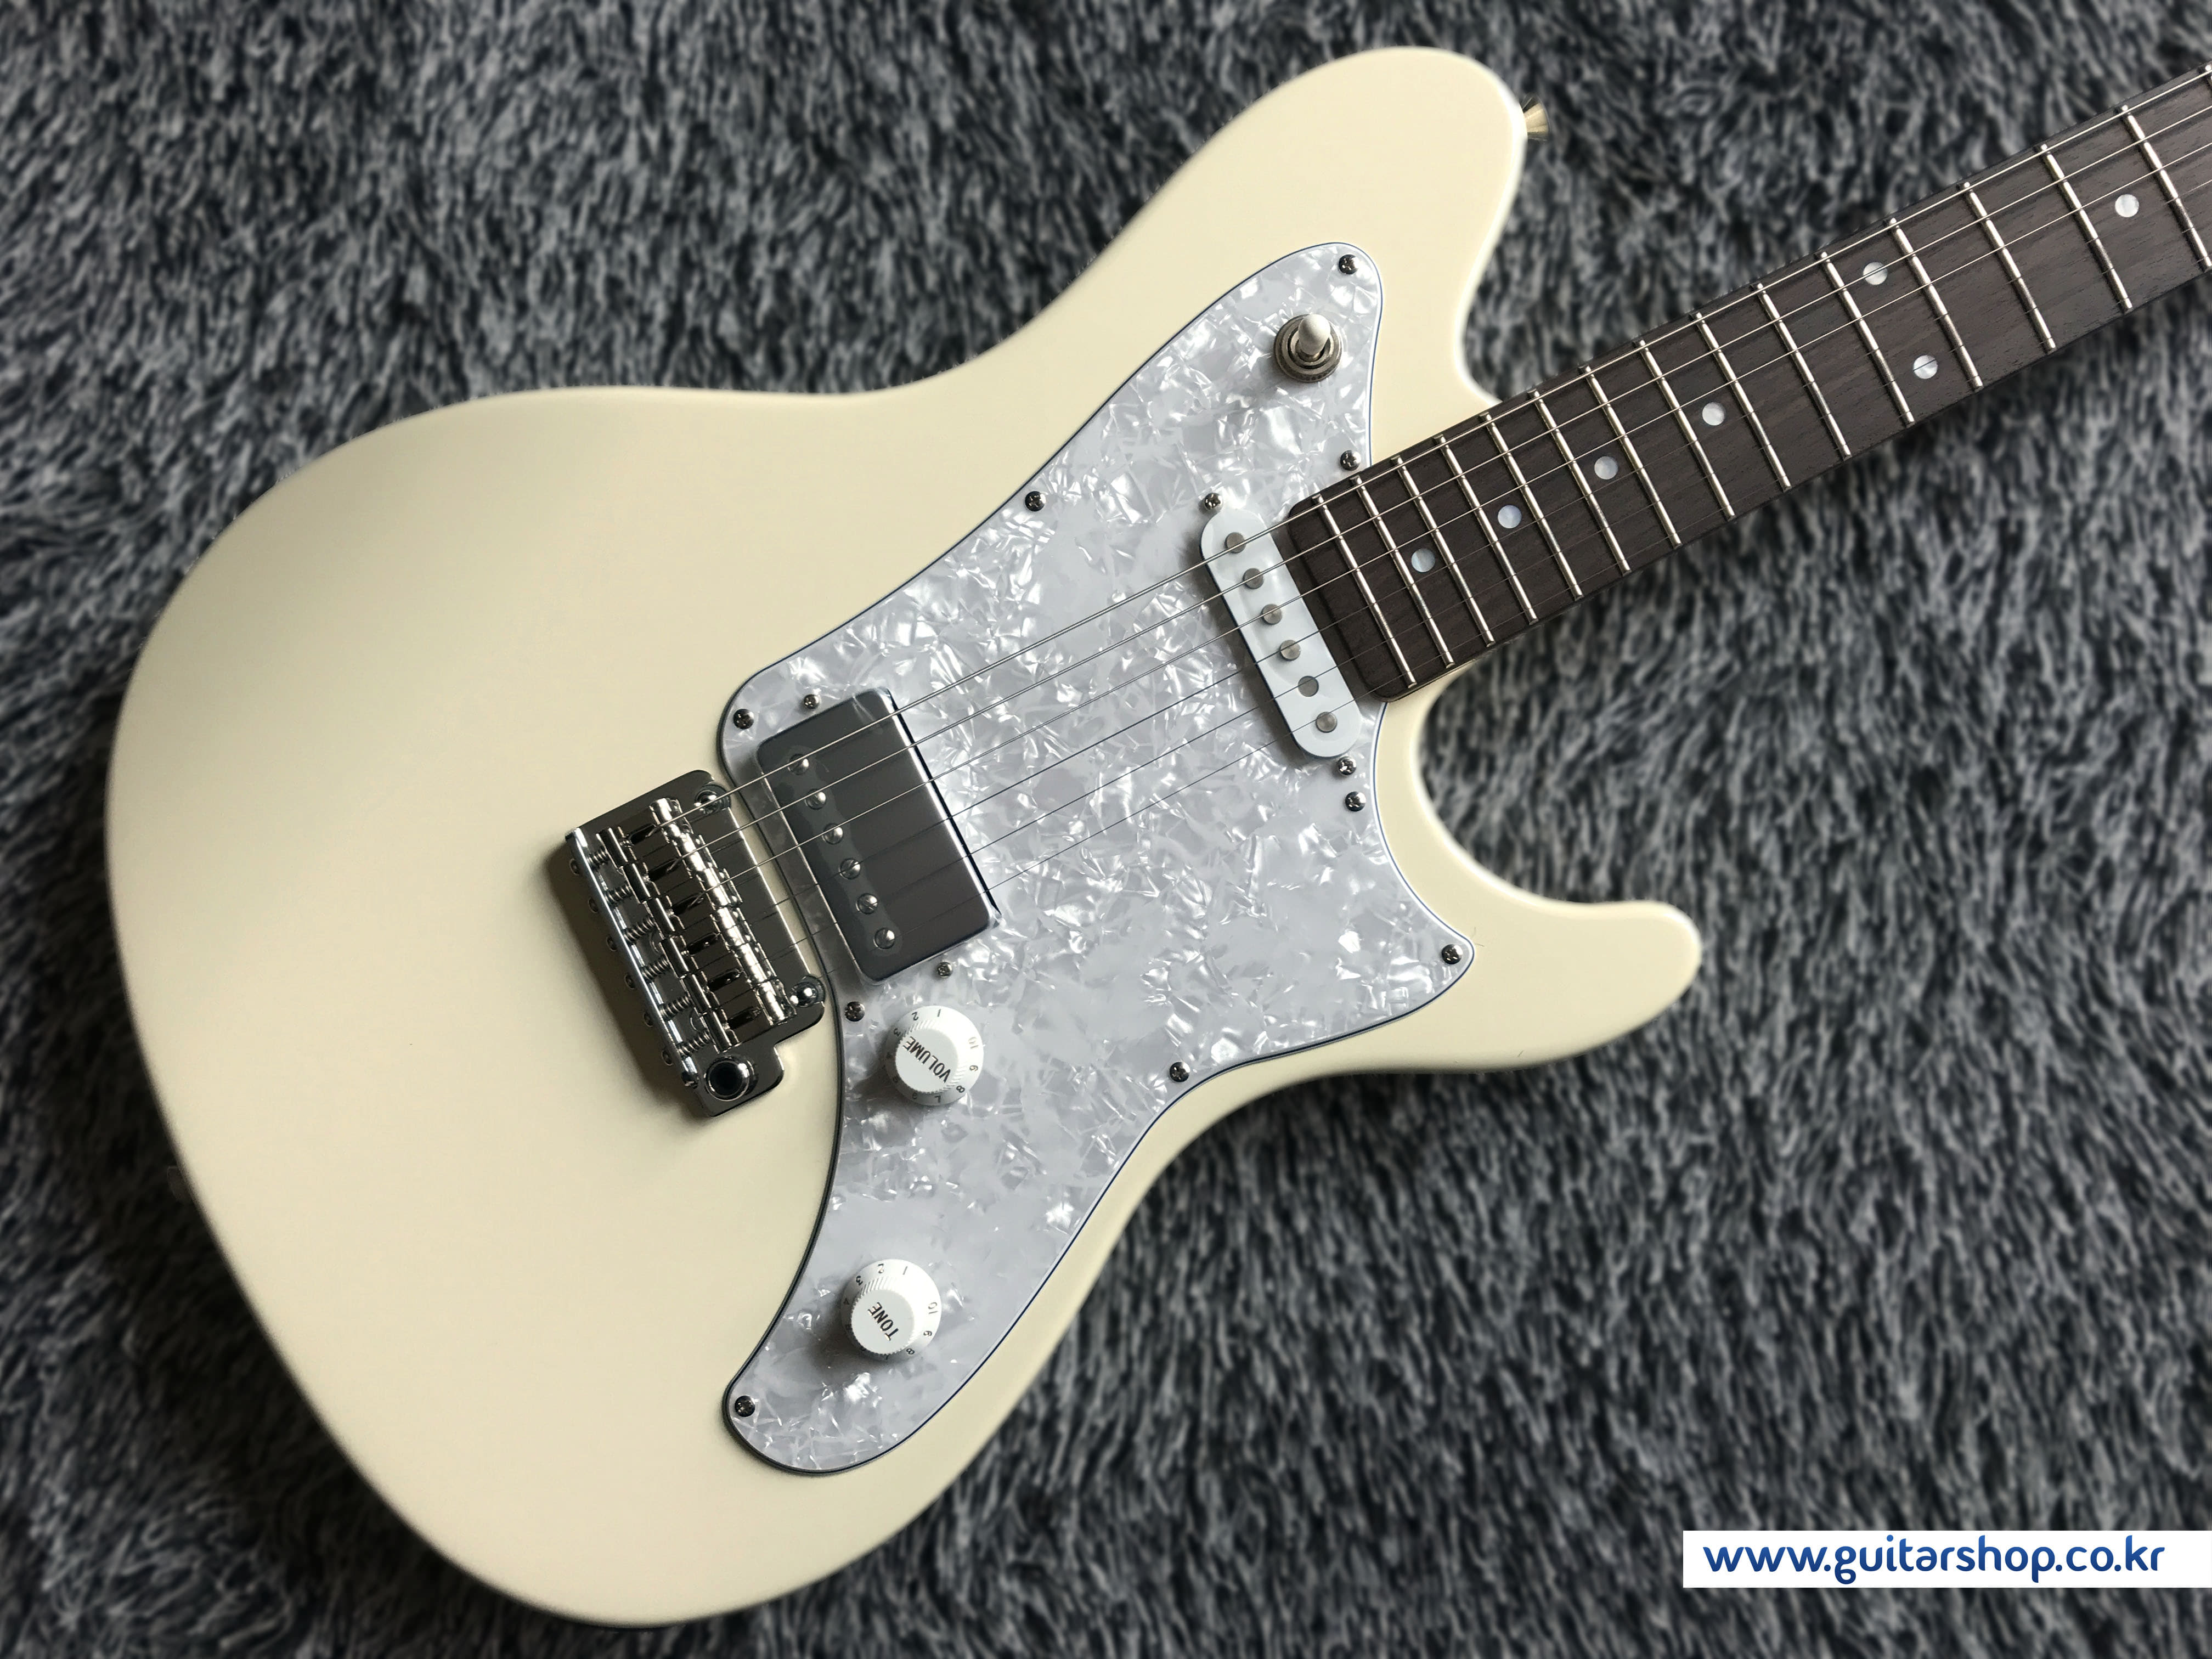 SUGI RMG GUITAR (Vintage White Color)